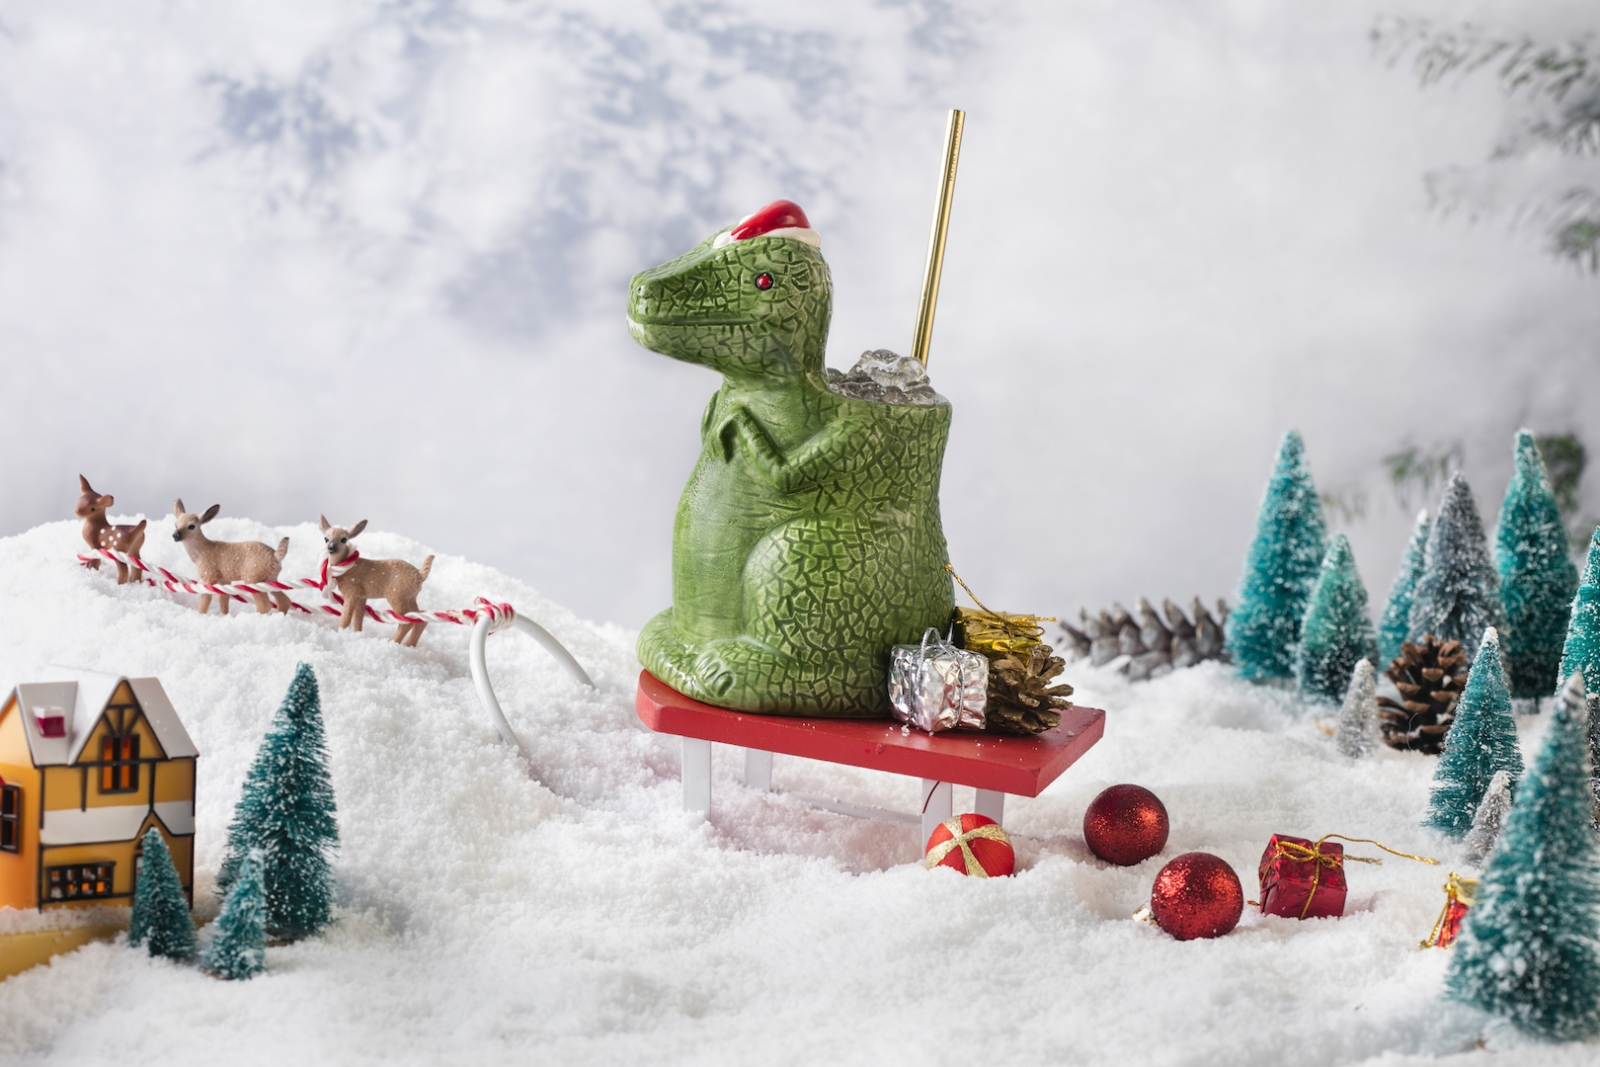 The new SanTaRex cocktail is served up in a mug shaped like the Cretaceous carnivore donning a Santa hat. (Photo by Melissa Horn, courtesy of Miracle)